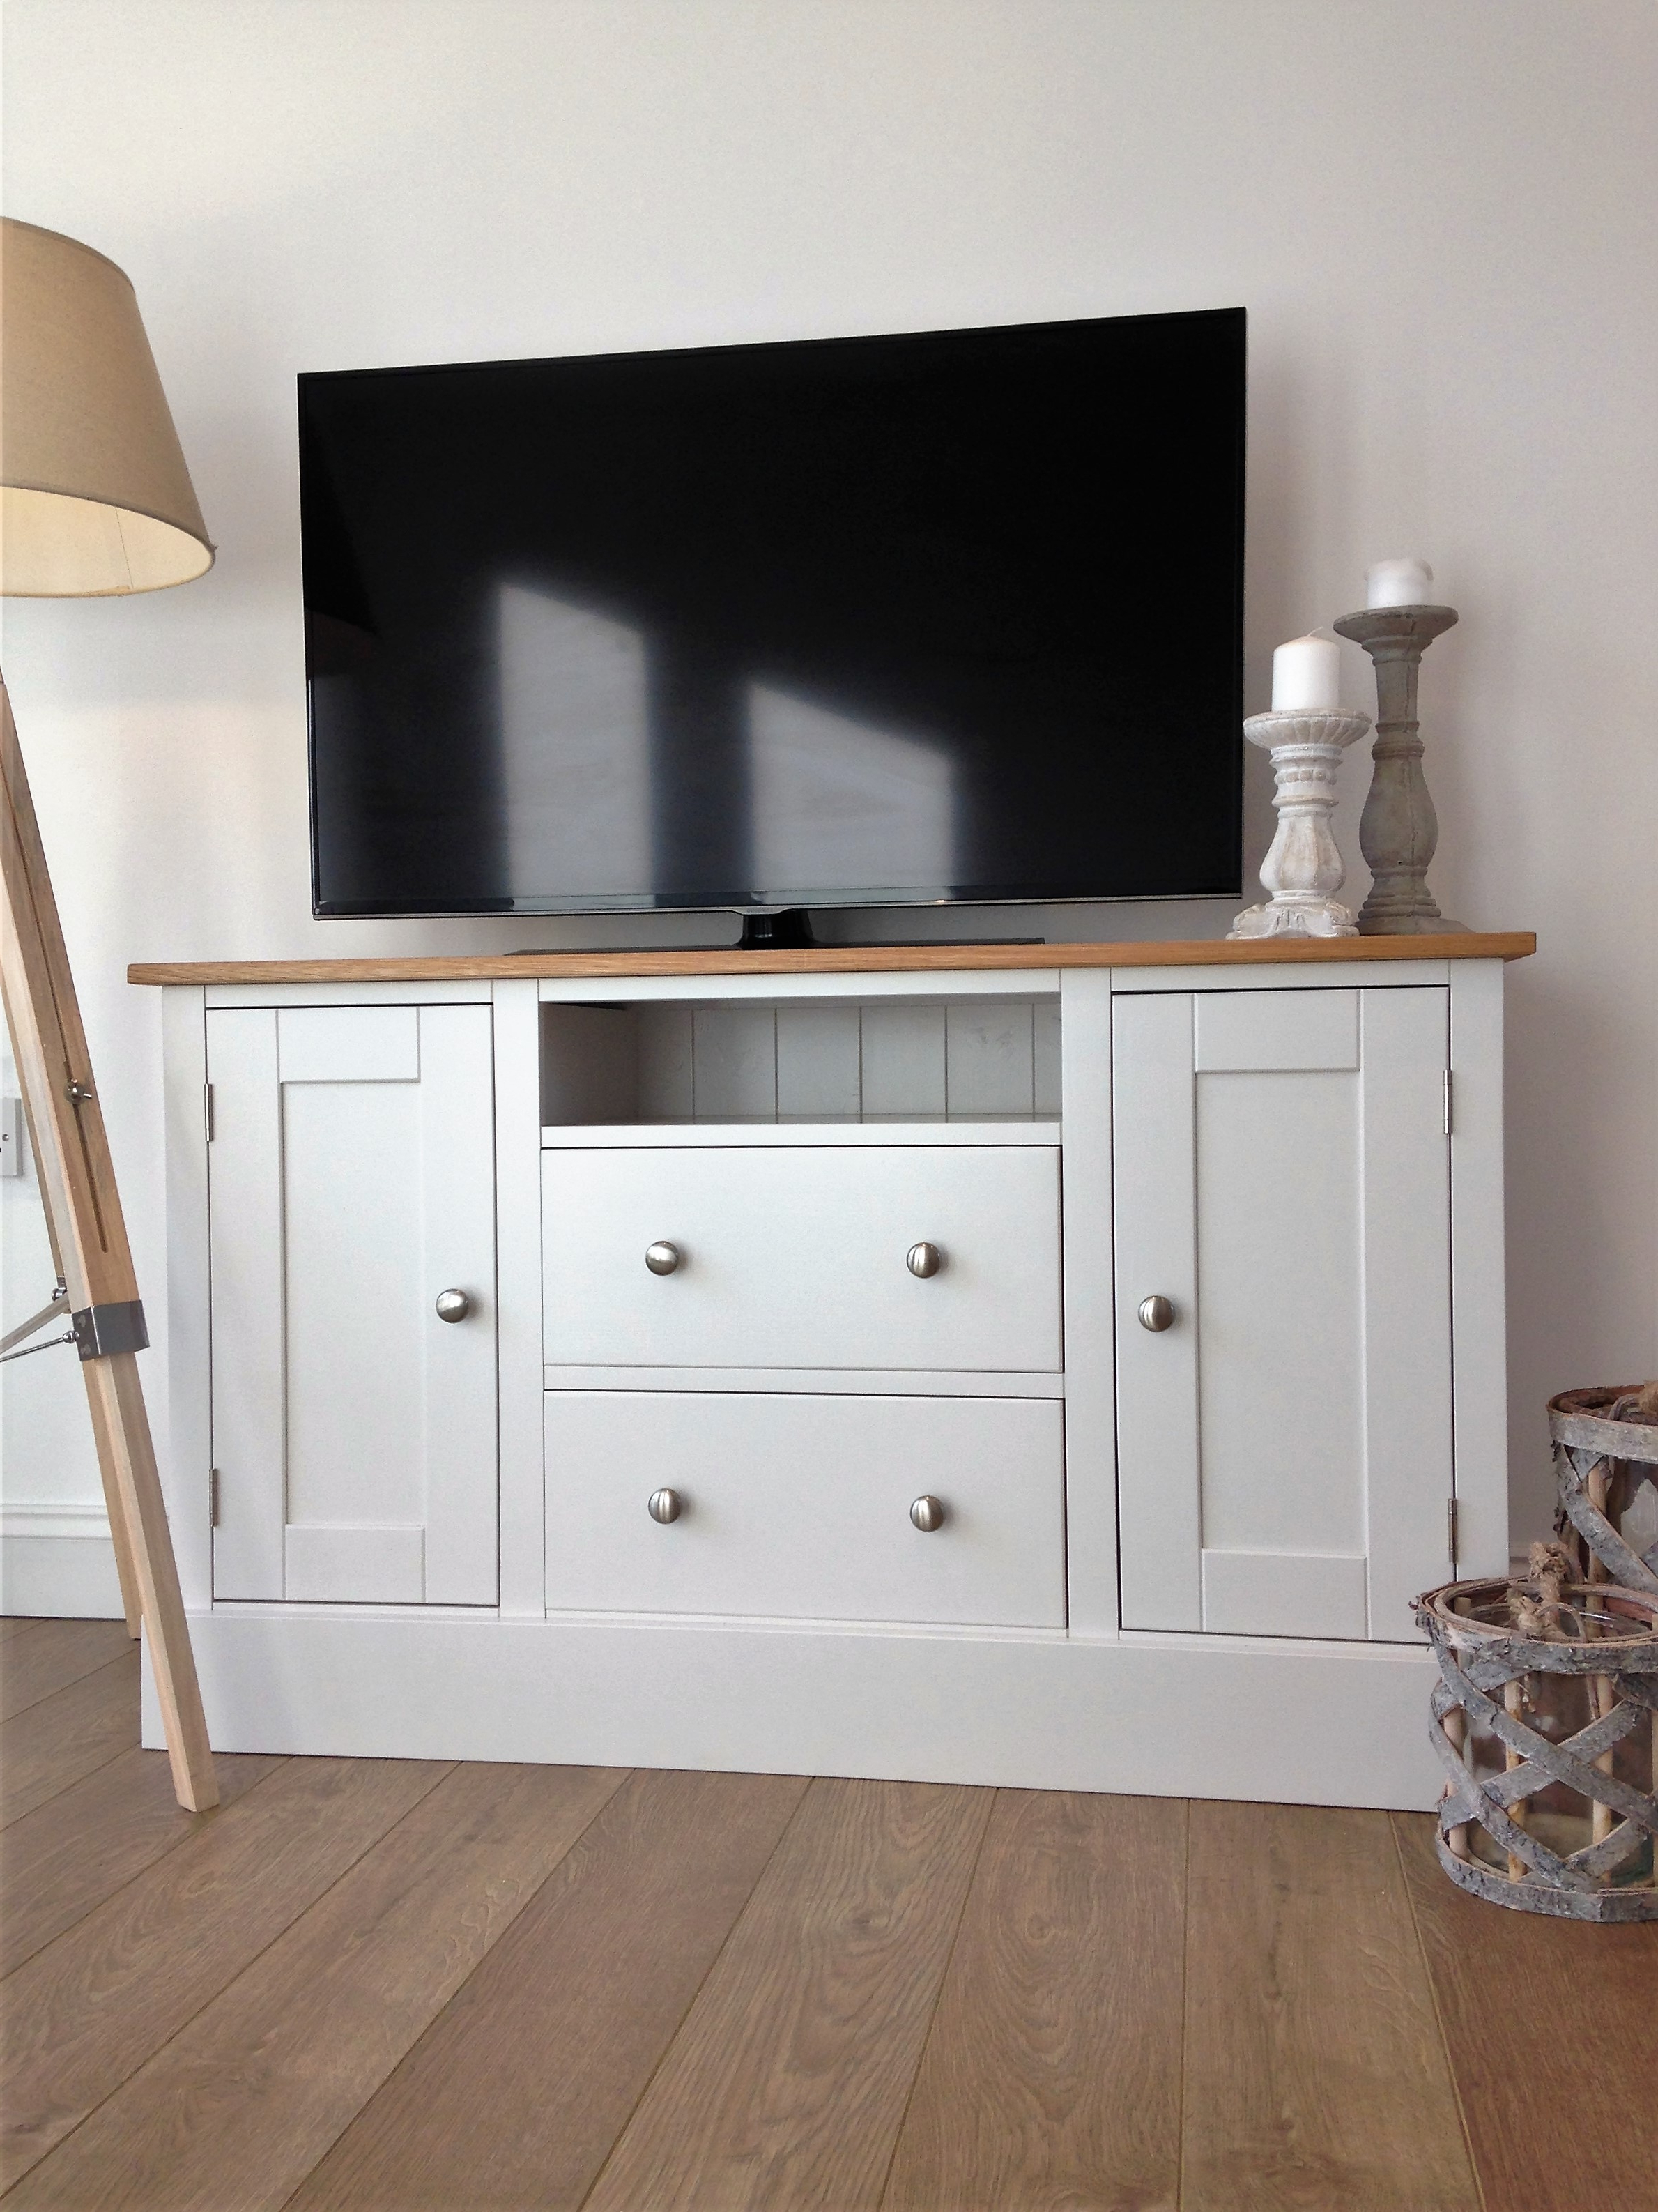 2017 White Painted Tv Cabinets For 4Ft Painted Tv Cabinet Made Of Solid Oak & Pine – Nest At Number 20 (Gallery 6 of 20)